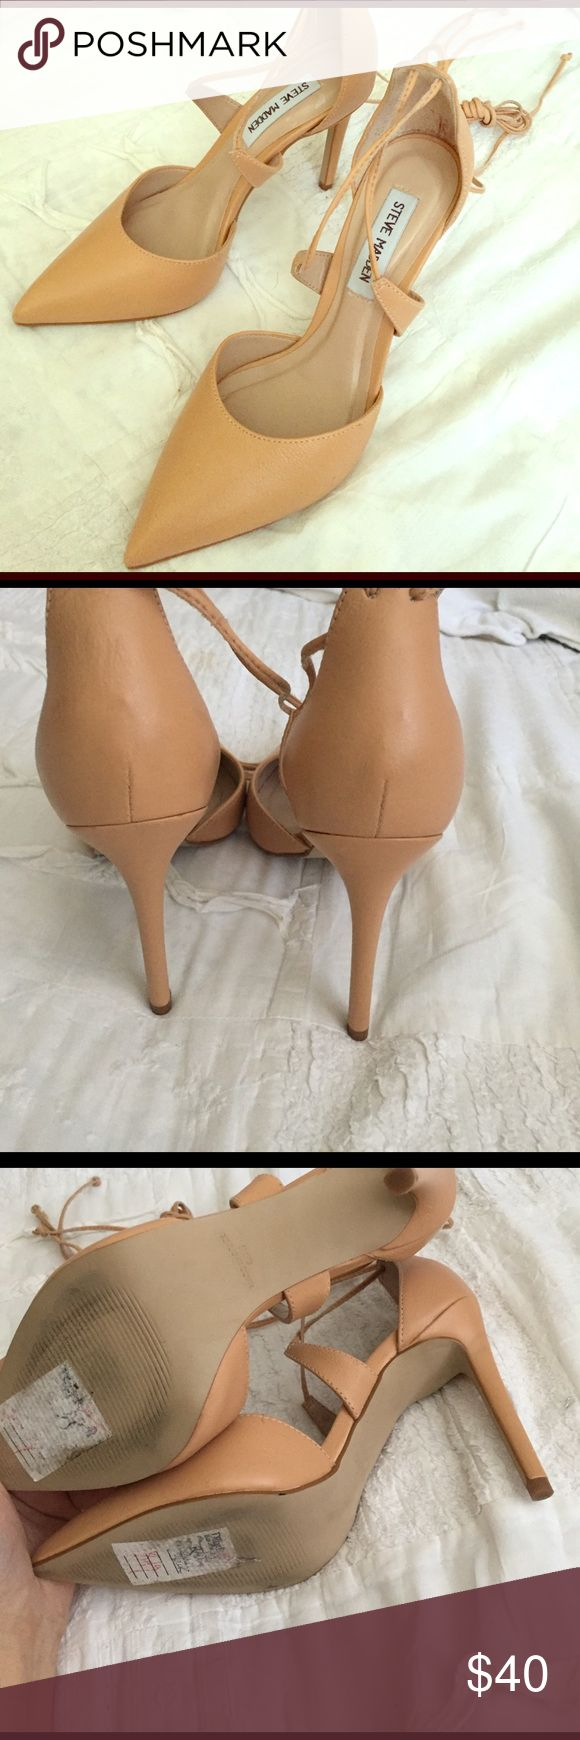 Steve madden nude wrap pointes Worn once, bought brand new from dillards (still has sticker label) original $98.00. Clean #nude #anklewrap #pointed heels #stevemadden. #evolkeeks Steve Madden Shoes Heels